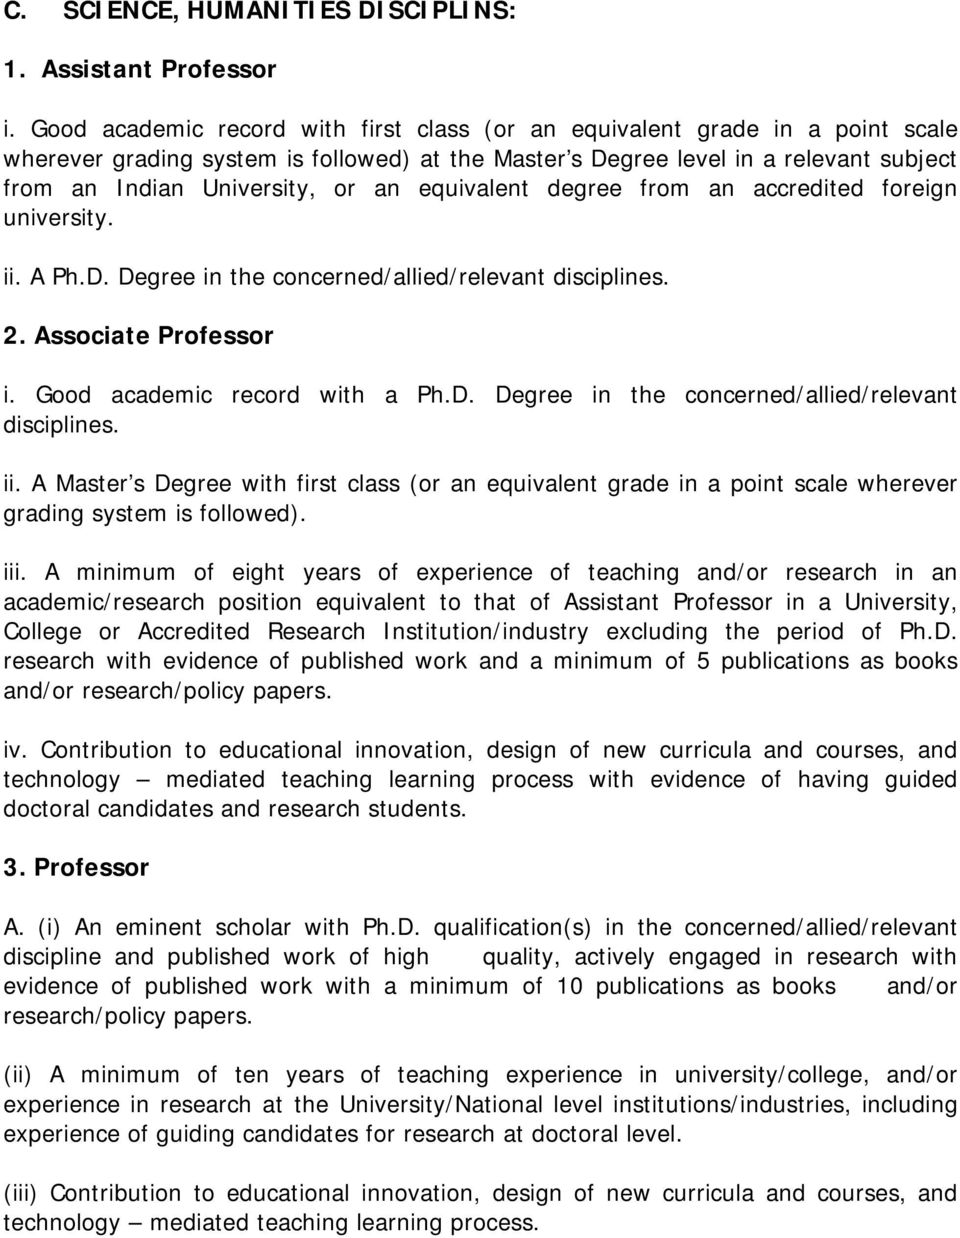 equivalent degree from an accredited foreign university. ii. A Ph.D. Degree in the concerned/allied/relevant disciplines. 2. Associate Professor i. Good academic record with a Ph.D. Degree in the concerned/allied/relevant disciplines. ii. A Master s Degree with first class (or an equivalent grade in a point scale wherever grading system is followed).